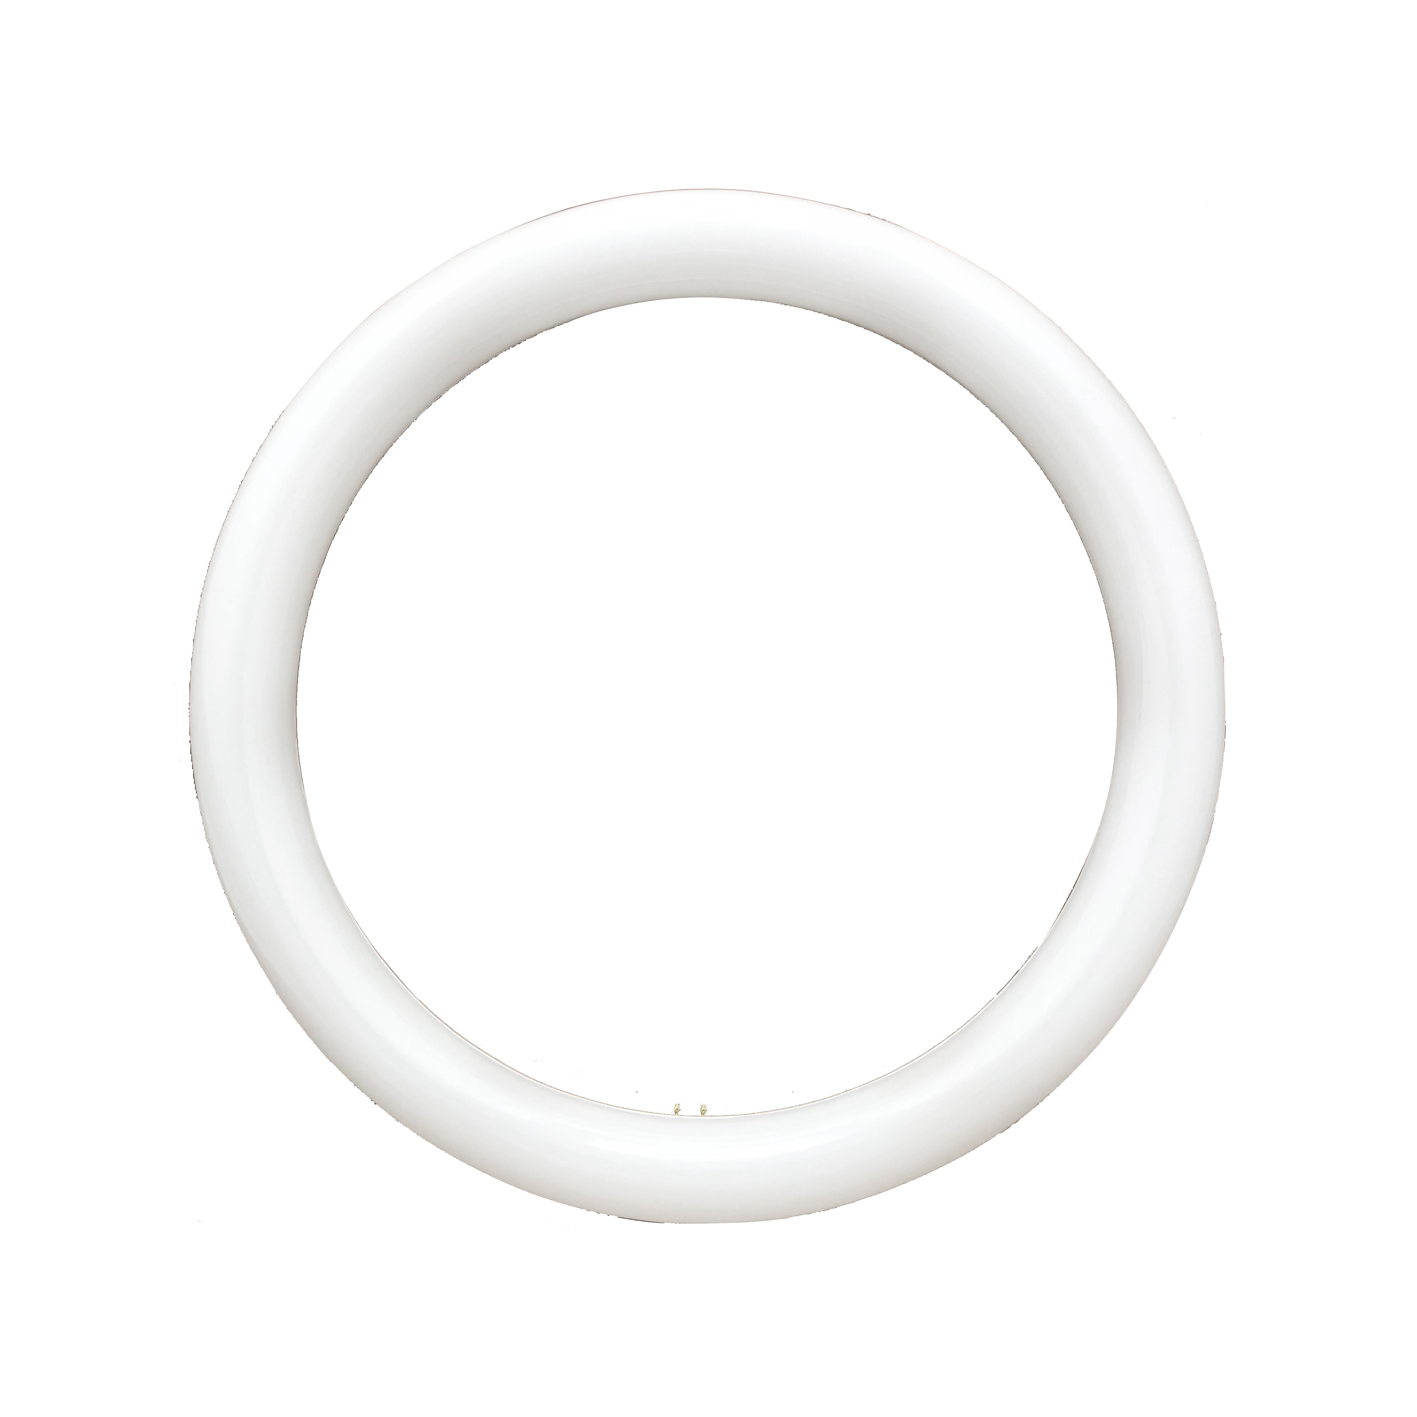 Circolina LED Circular Tube T9 G10q 20 w diameter 300 mm T9-20W